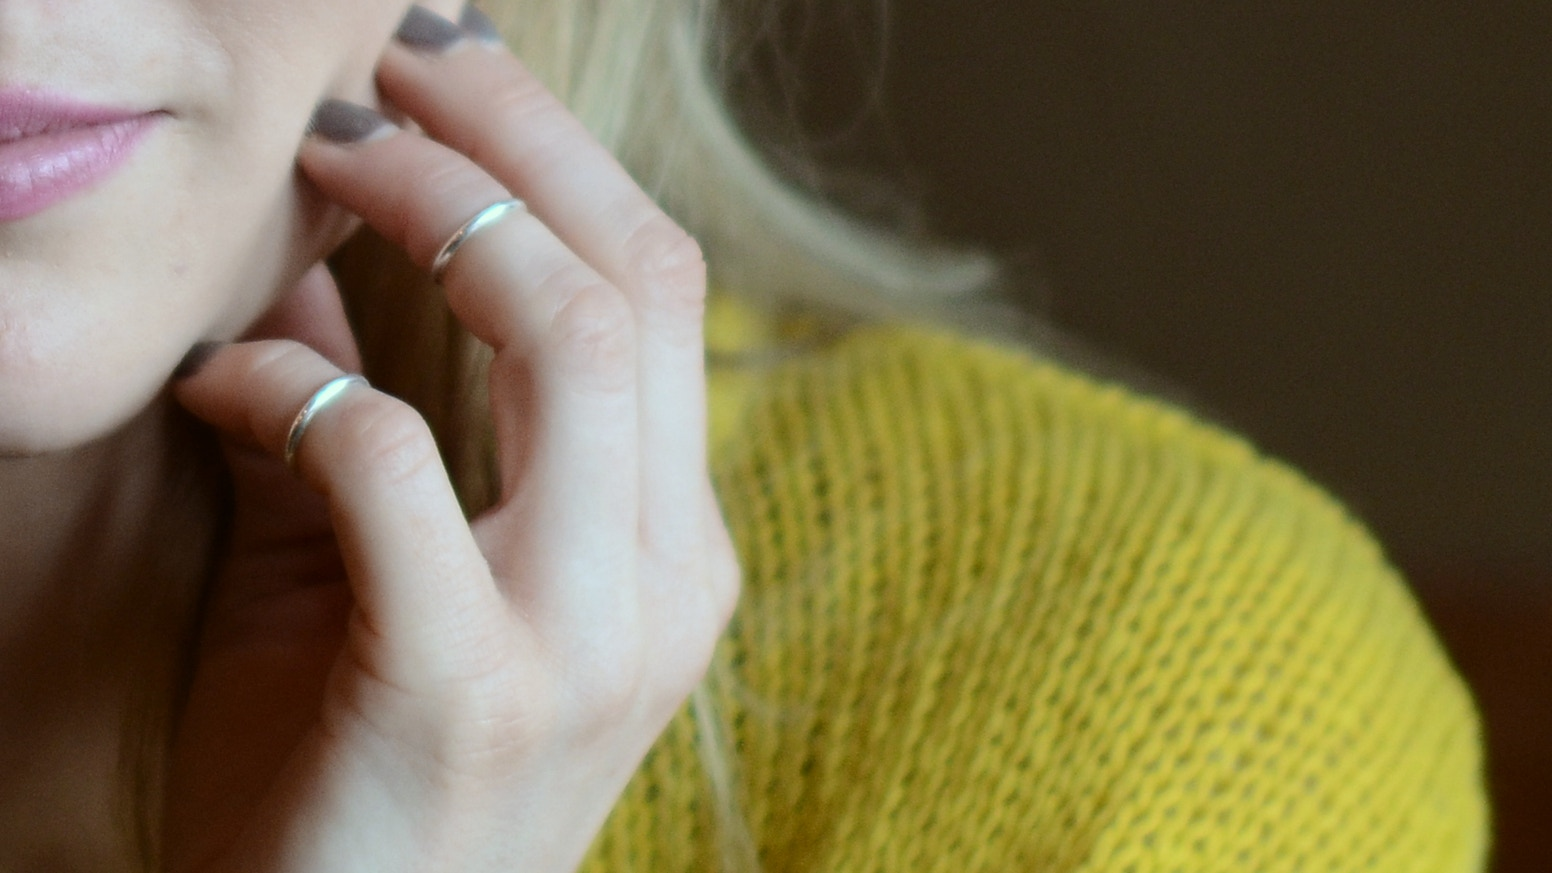 Mid-Finger Rings are a sophisticated accessory for fashionable fingers everywhere. Simple. Elegant. Fine Sterling Silver.